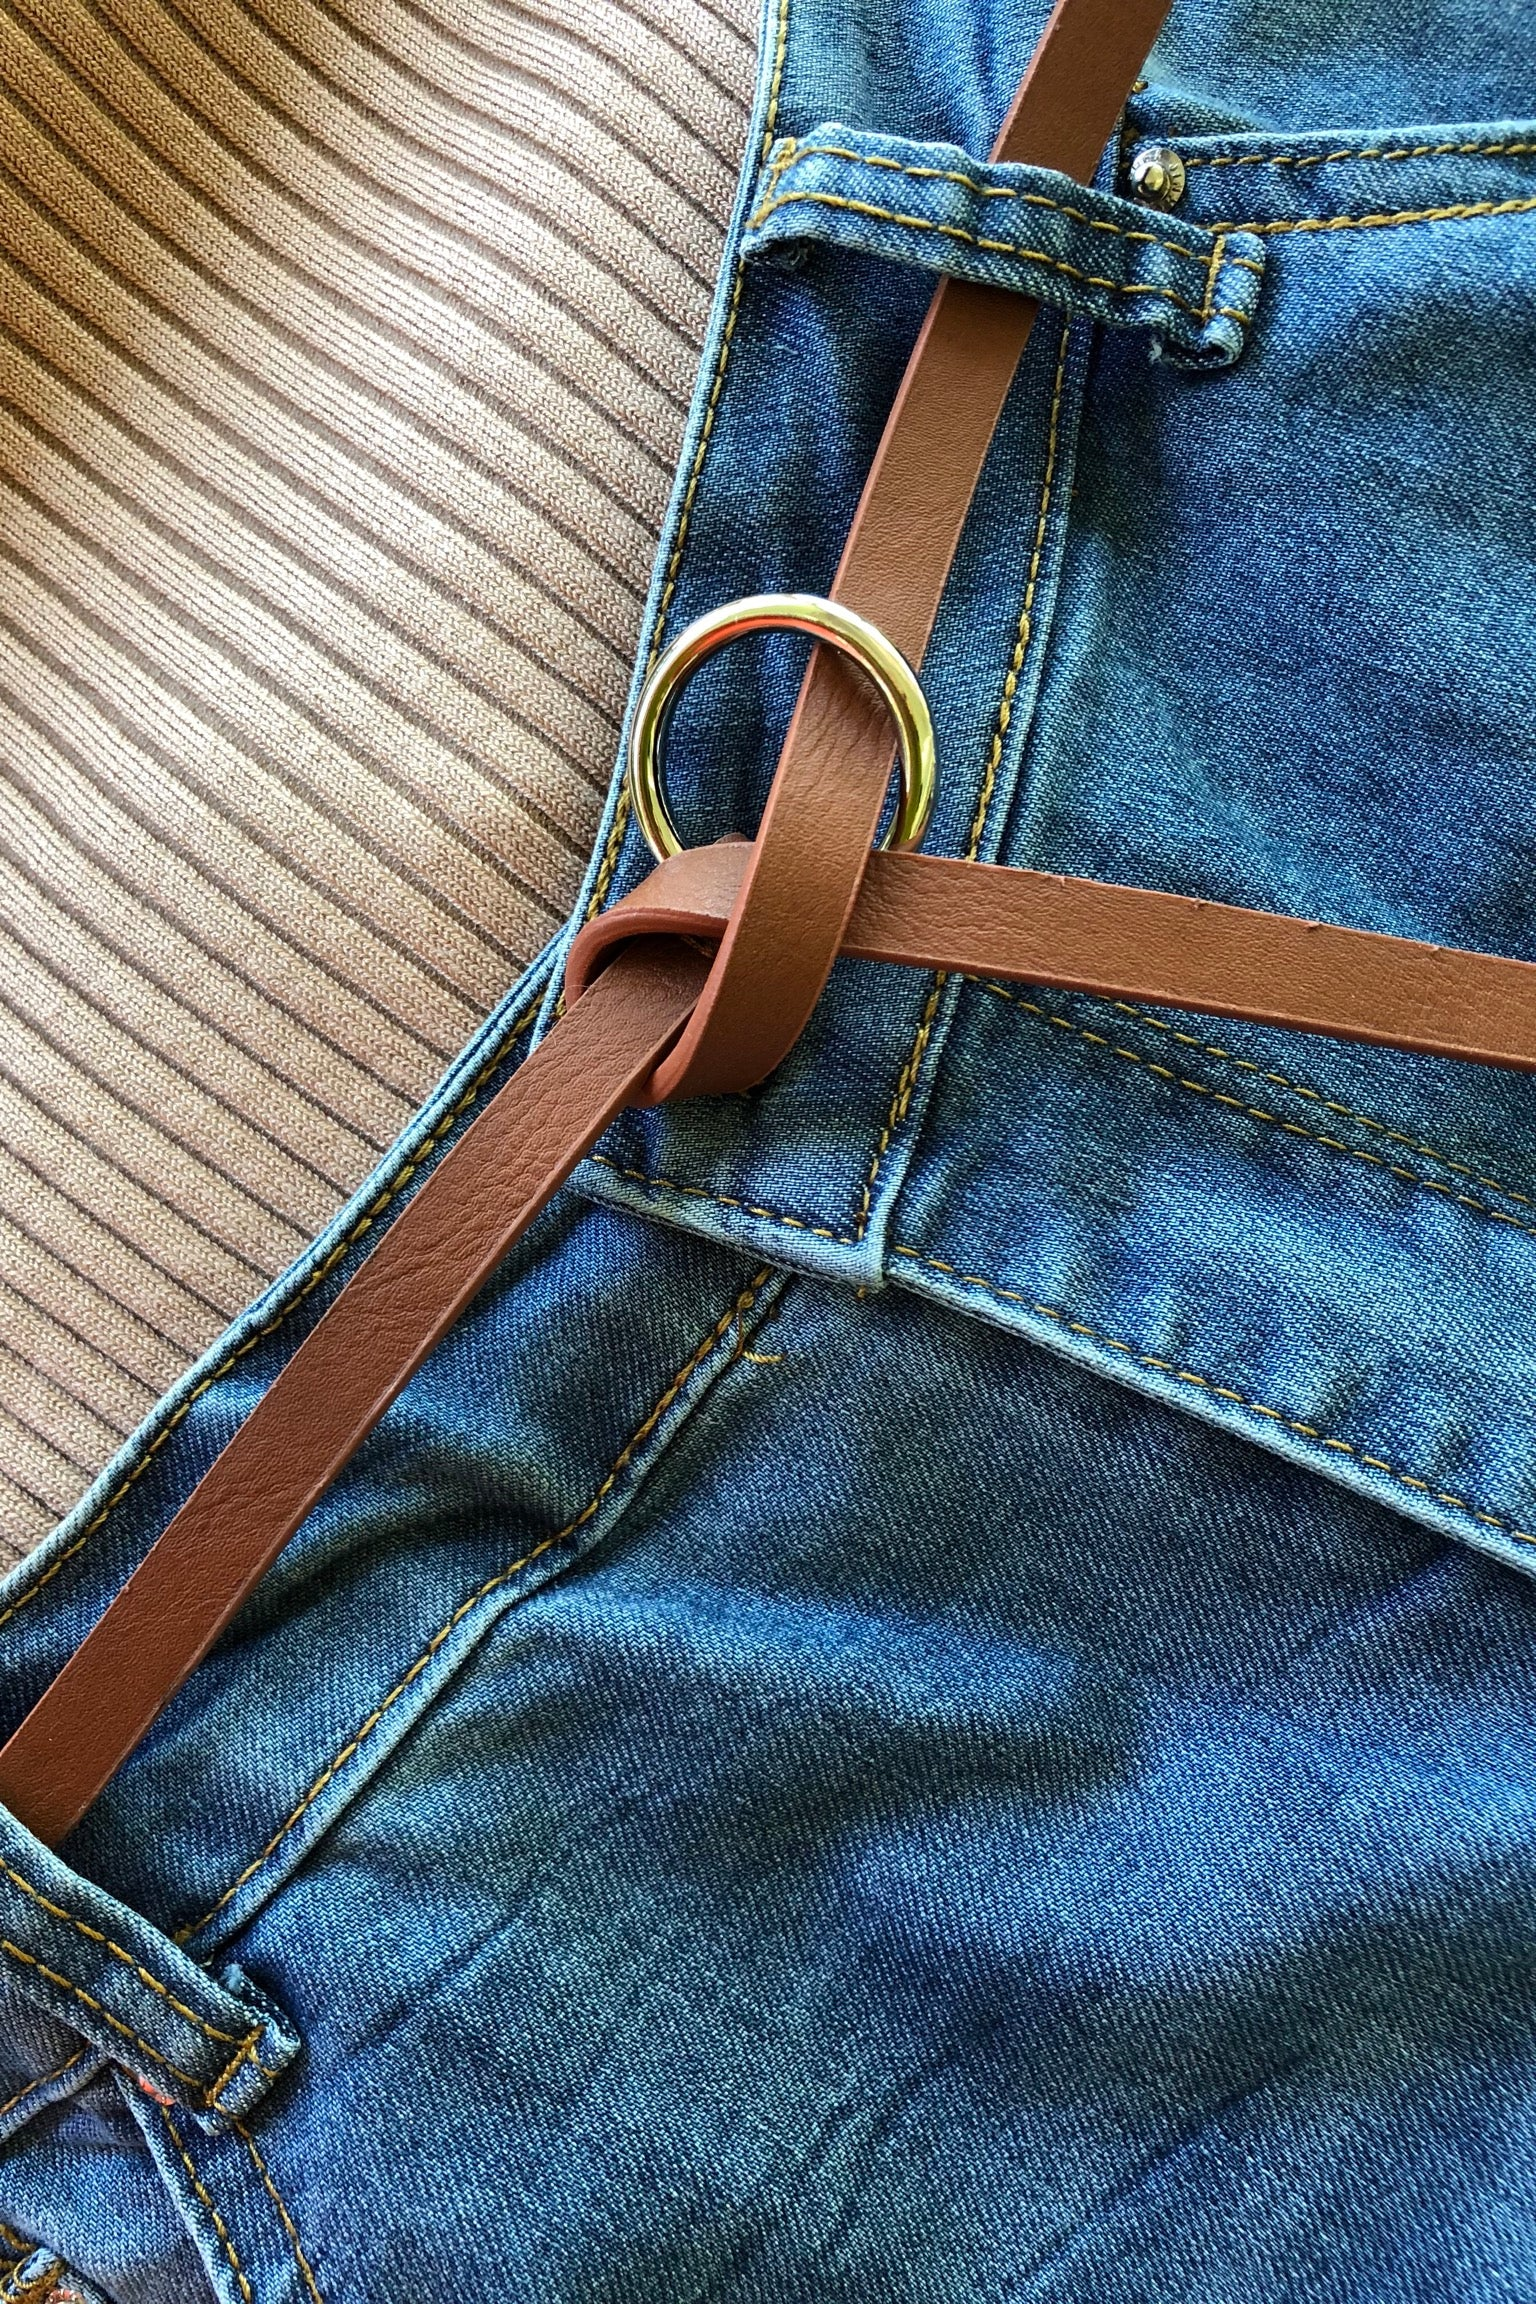 Belt The Ring Available in Tan